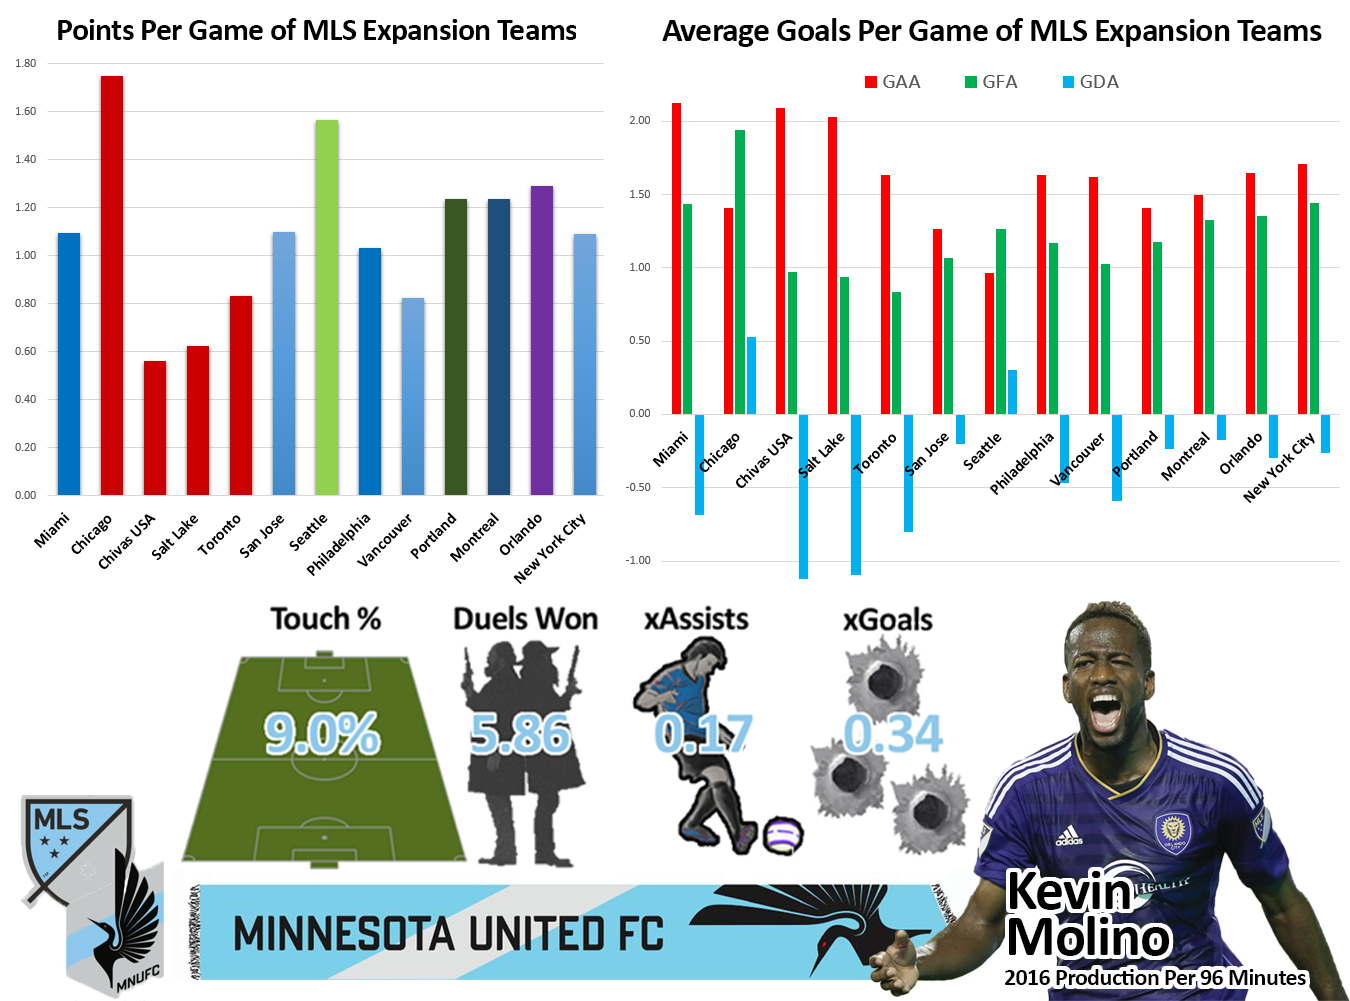 GAA: goals against average, GFA: goals for average, GDA: goal difference average.Production is per 96 minutes because that is the average length of an MLS game. Touch percentage is percentage of total team touches on the ball while the player is on the field.. That, plus expected assists and goals can be found on our  Player xG 2016 table.